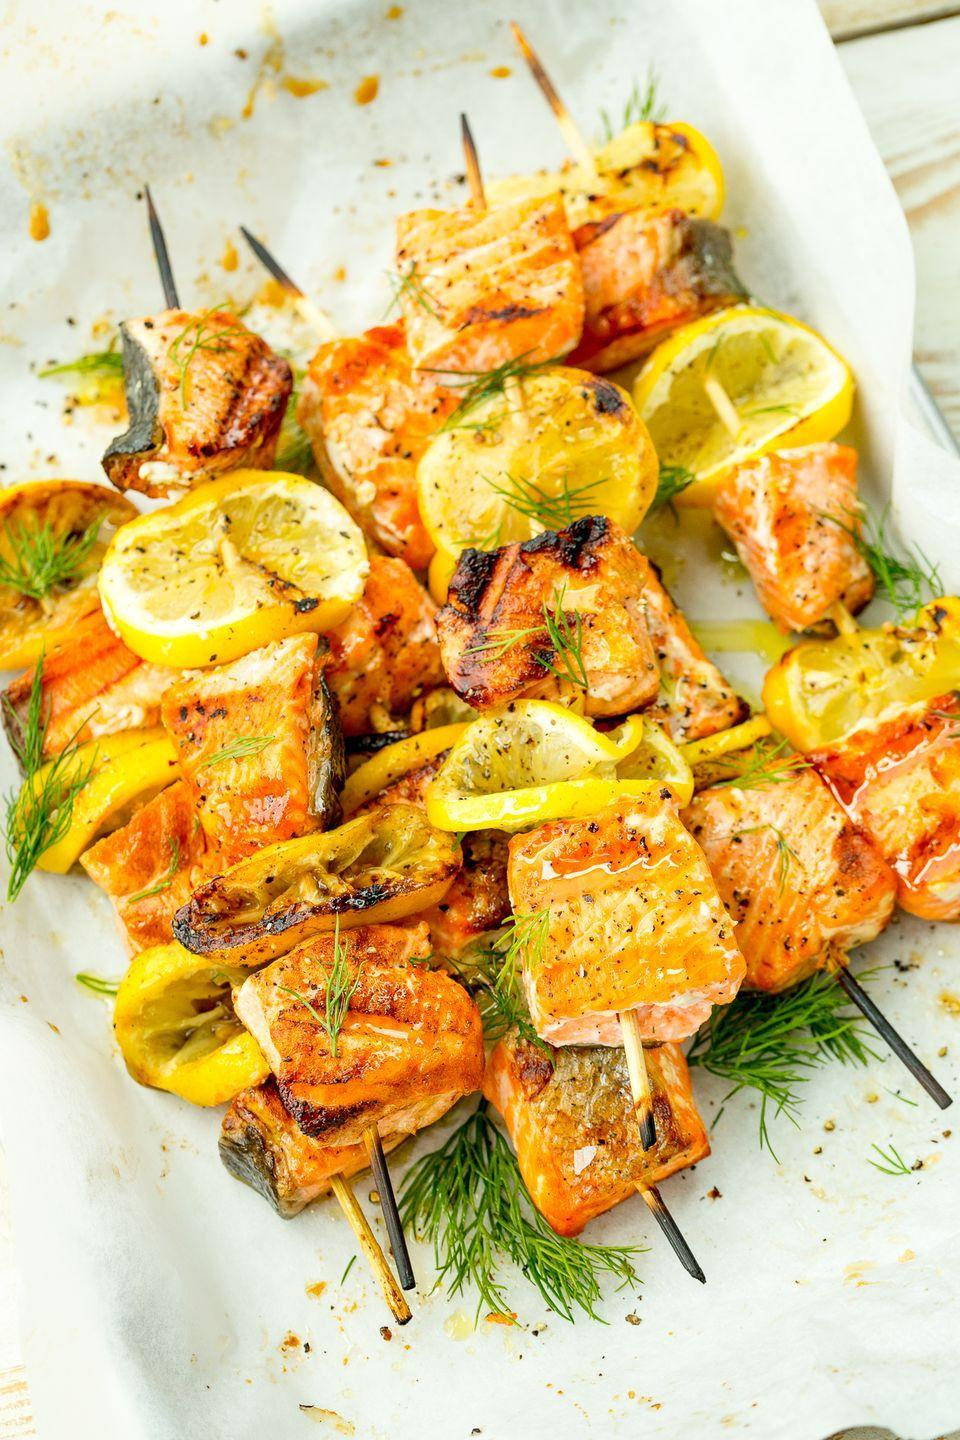 "<p>Lemony salmon kebabs are about to be your go-to for grilling season.</p><p>Get the recipe from <a href=""https://www.delish.com/cooking/recipe-ideas/recipes/a47375/mediterranean-salmon-skewers-recipe/"" rel=""nofollow noopener"" target=""_blank"" data-ylk=""slk:Delish"" class=""link rapid-noclick-resp"">Delish</a>.</p>"